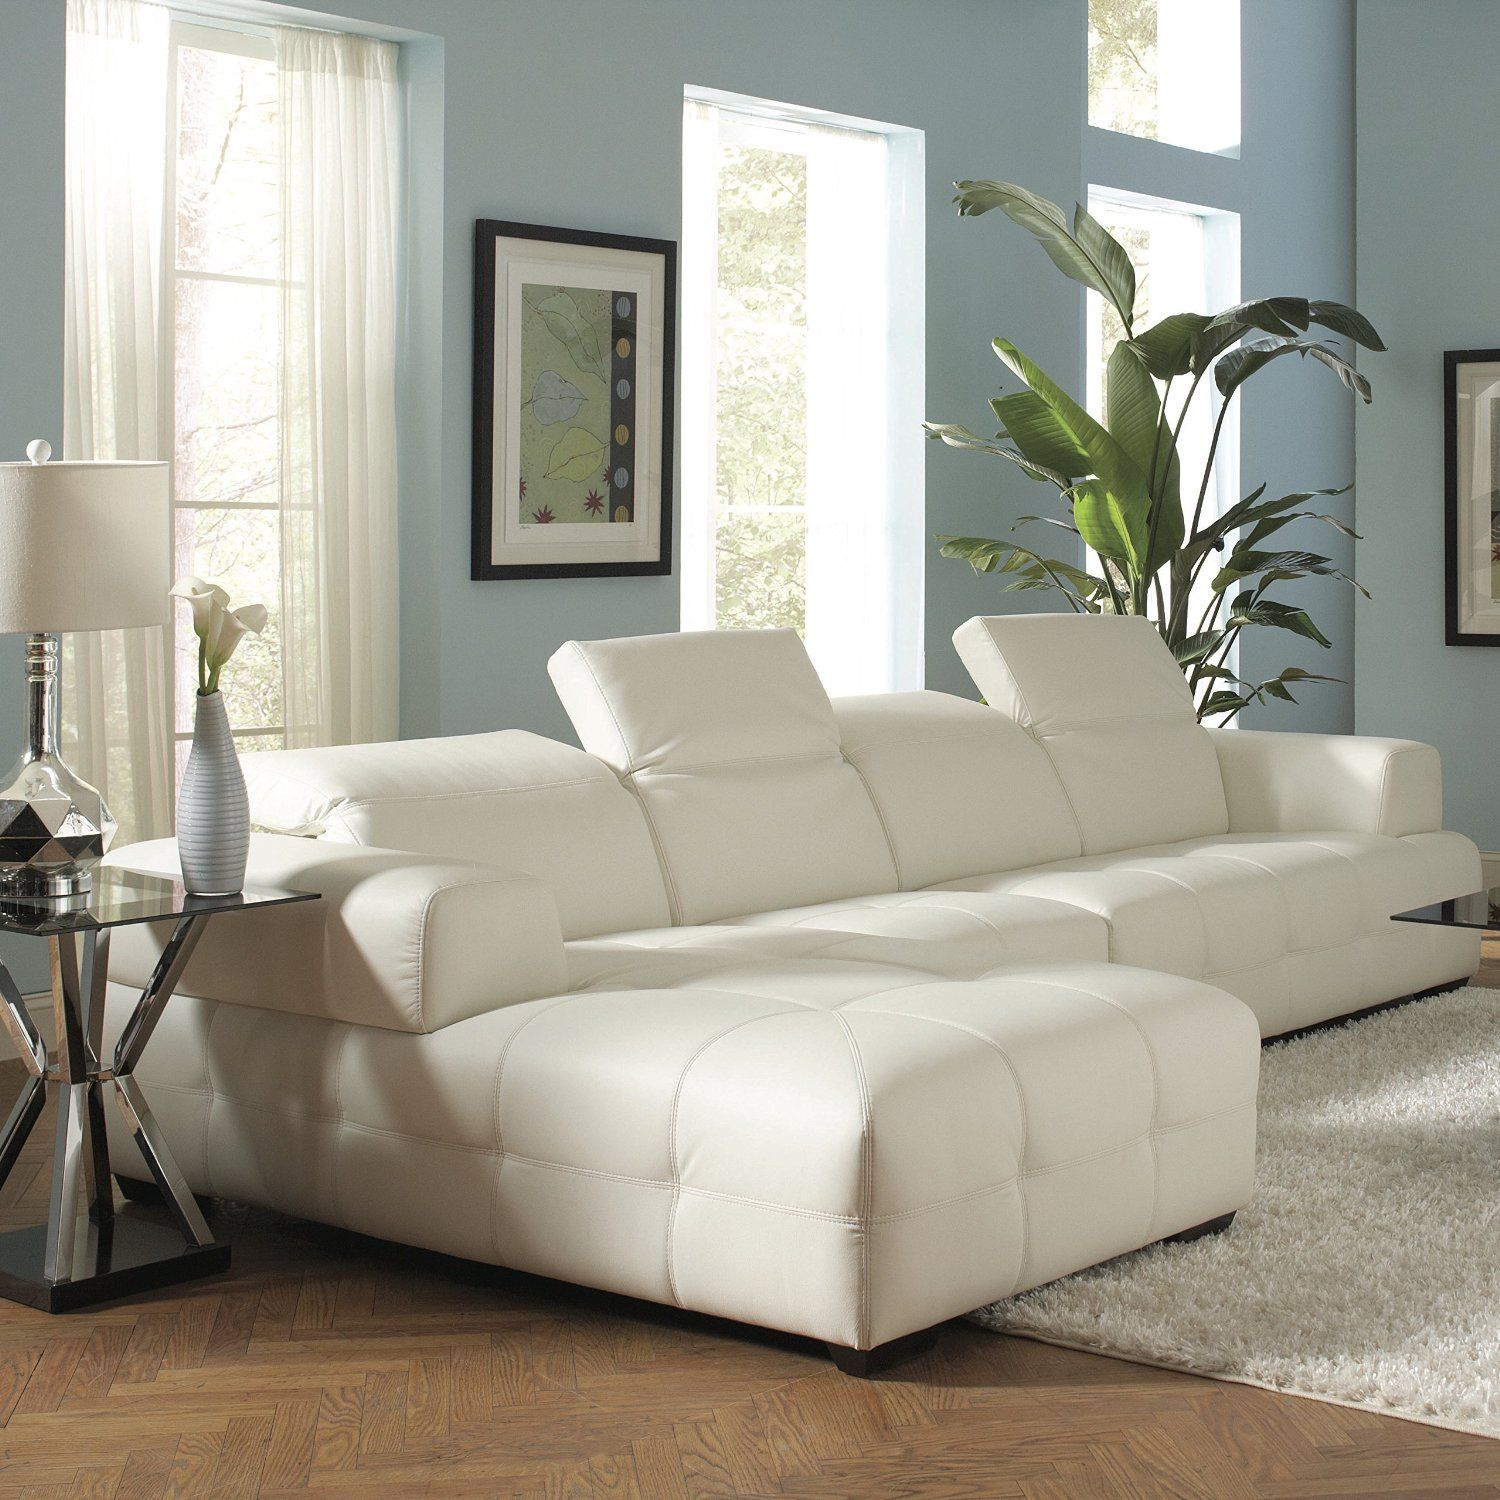 Best Amazon Com Coaster Home Furnishings 503617 Contemporary Sectional Sofa White Con Imágenes 400 x 300